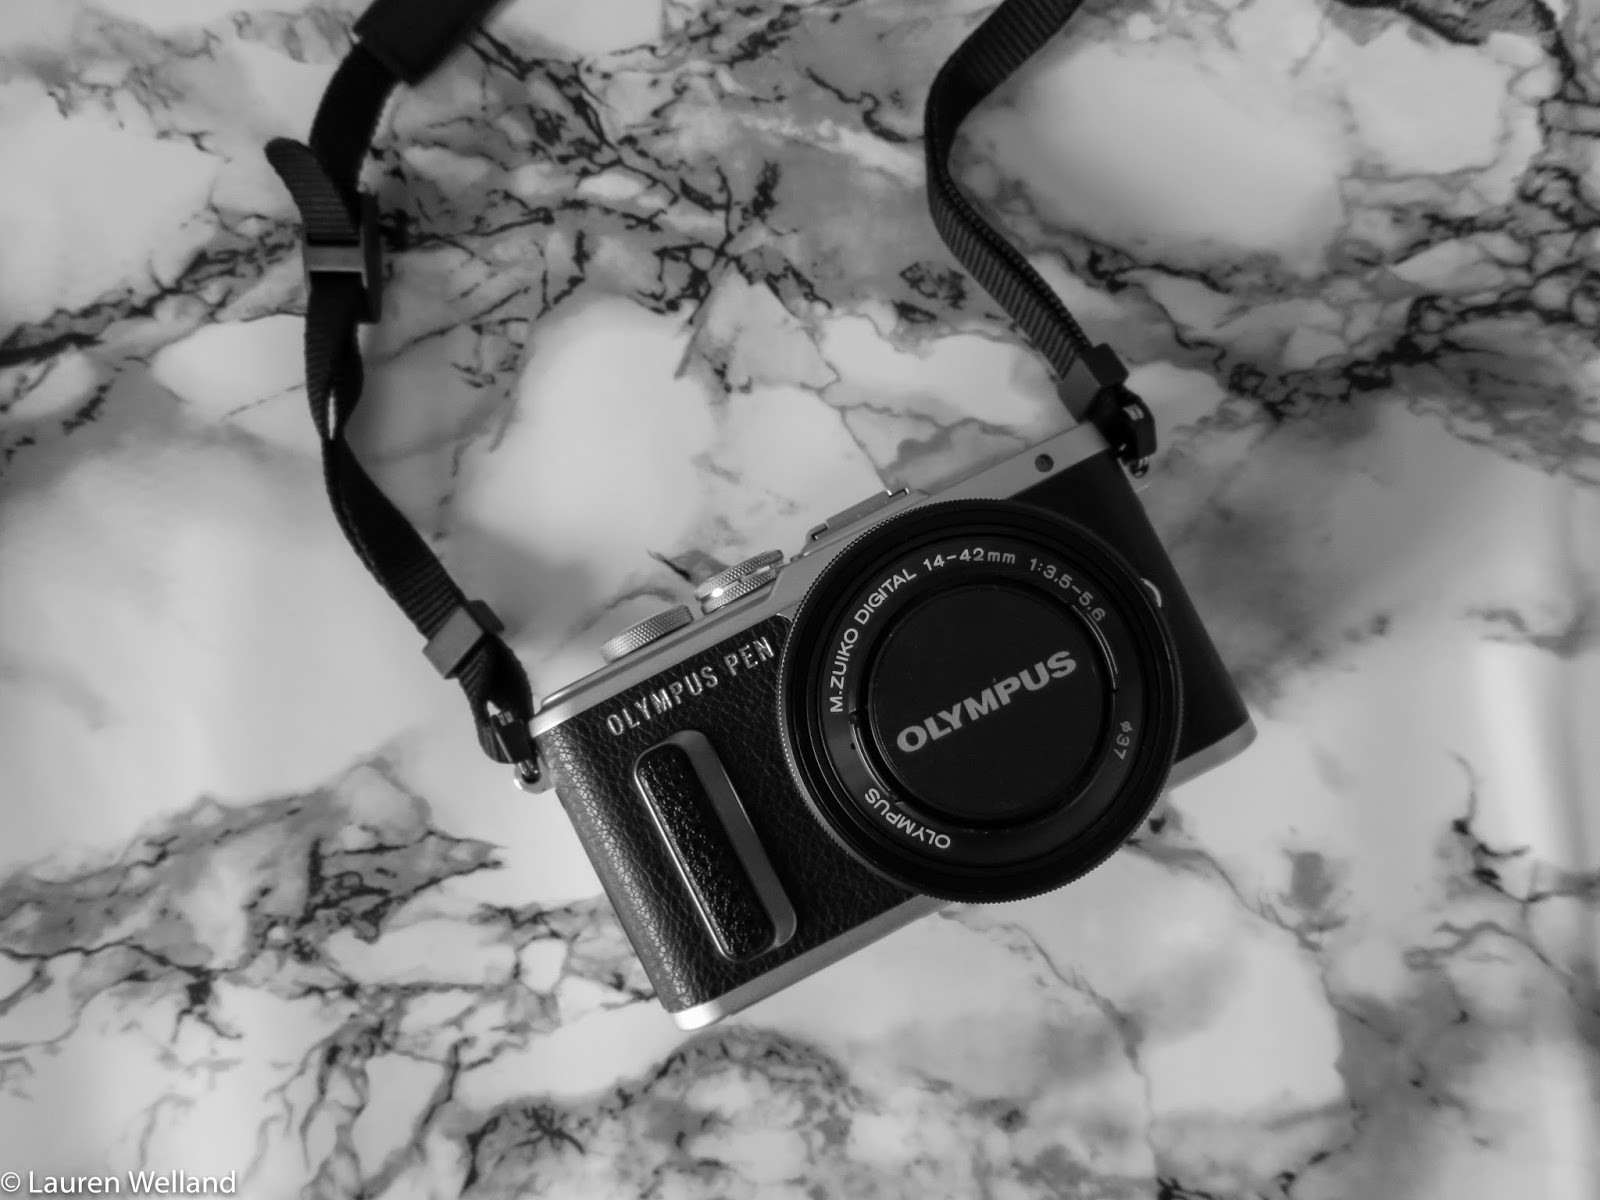 Photos of the new Olympus Pen - E-PL8 in black and silver with the M.ZUIKO DIGITAL ED 14‑42mm 1:3.5‑5.6 EZ Pancake lens